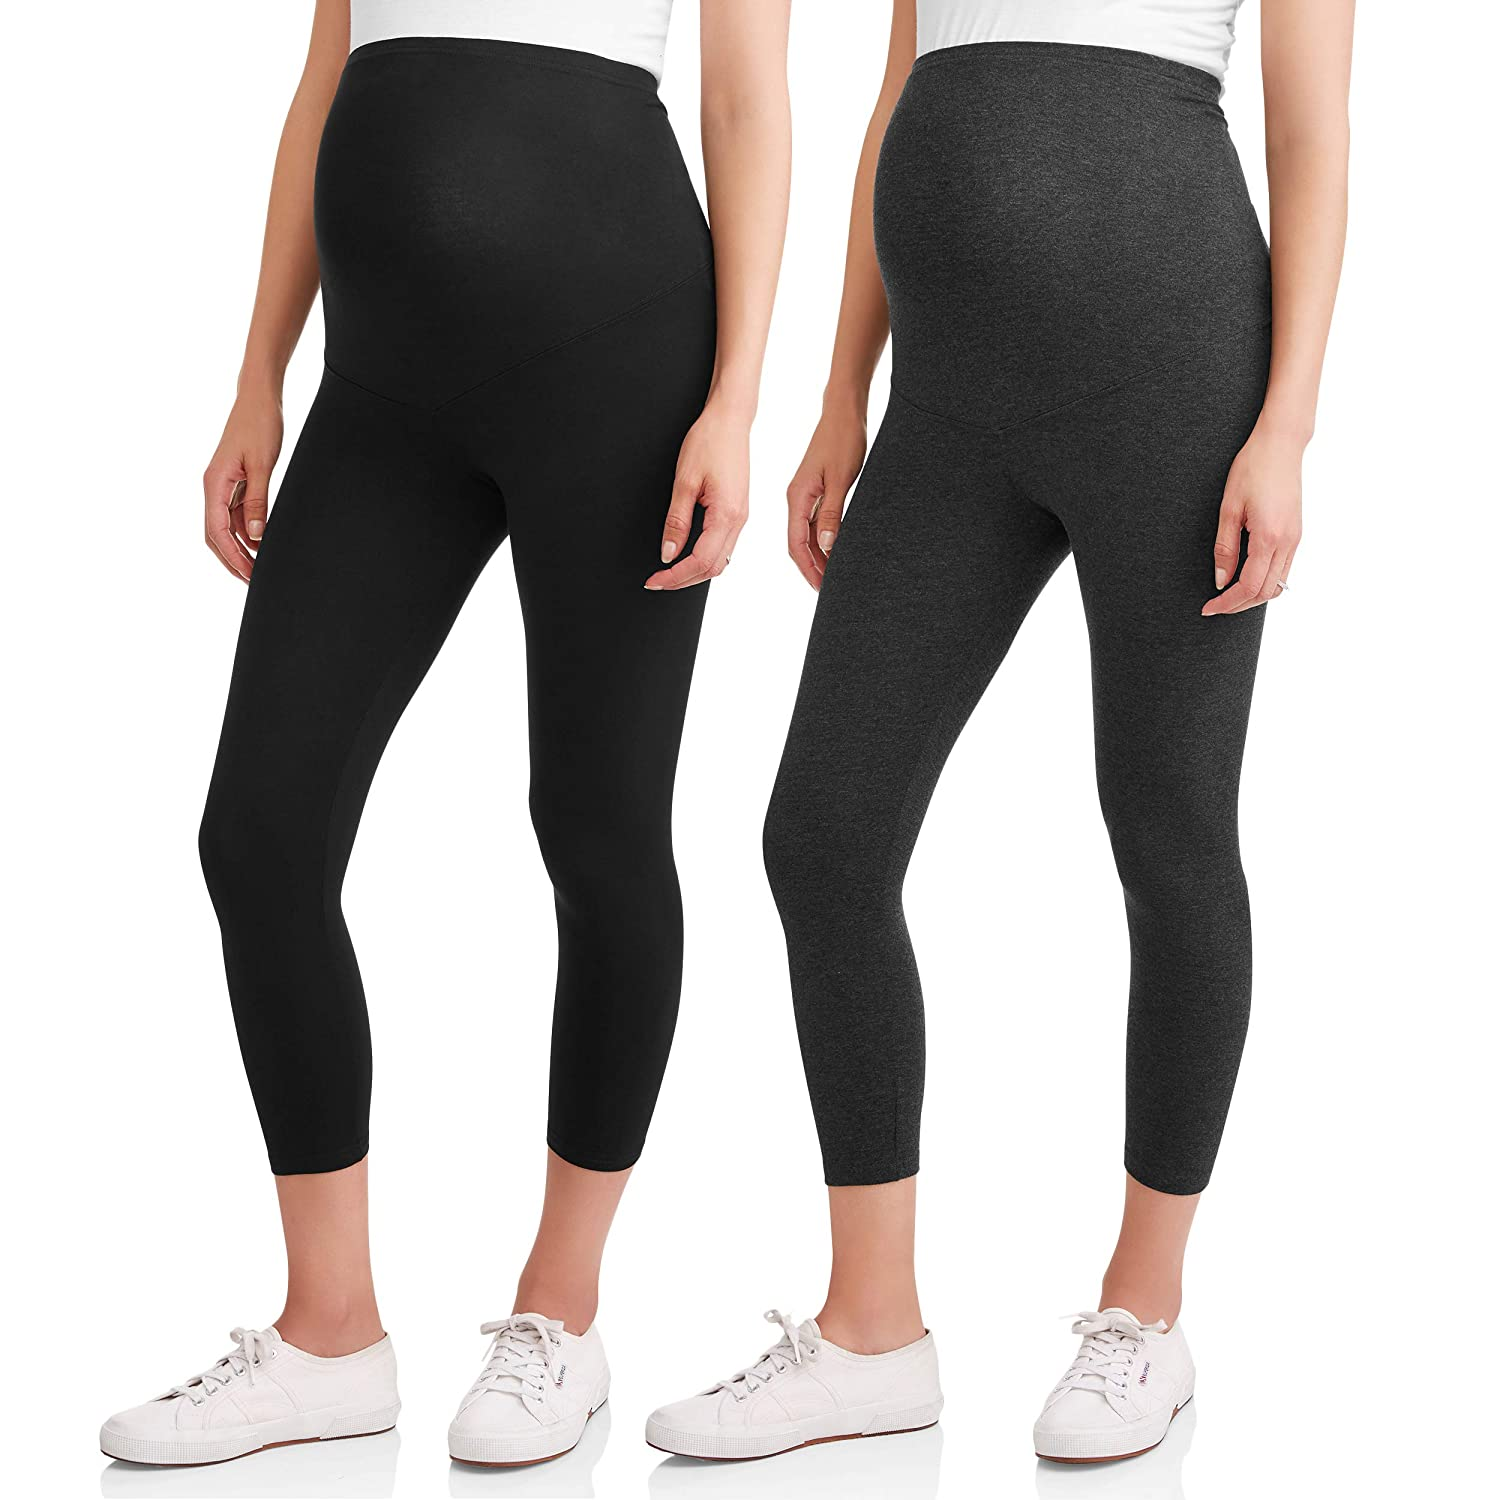 RUMOR HAS IT Maternity Over The Belly Capri Crop Support Leggings